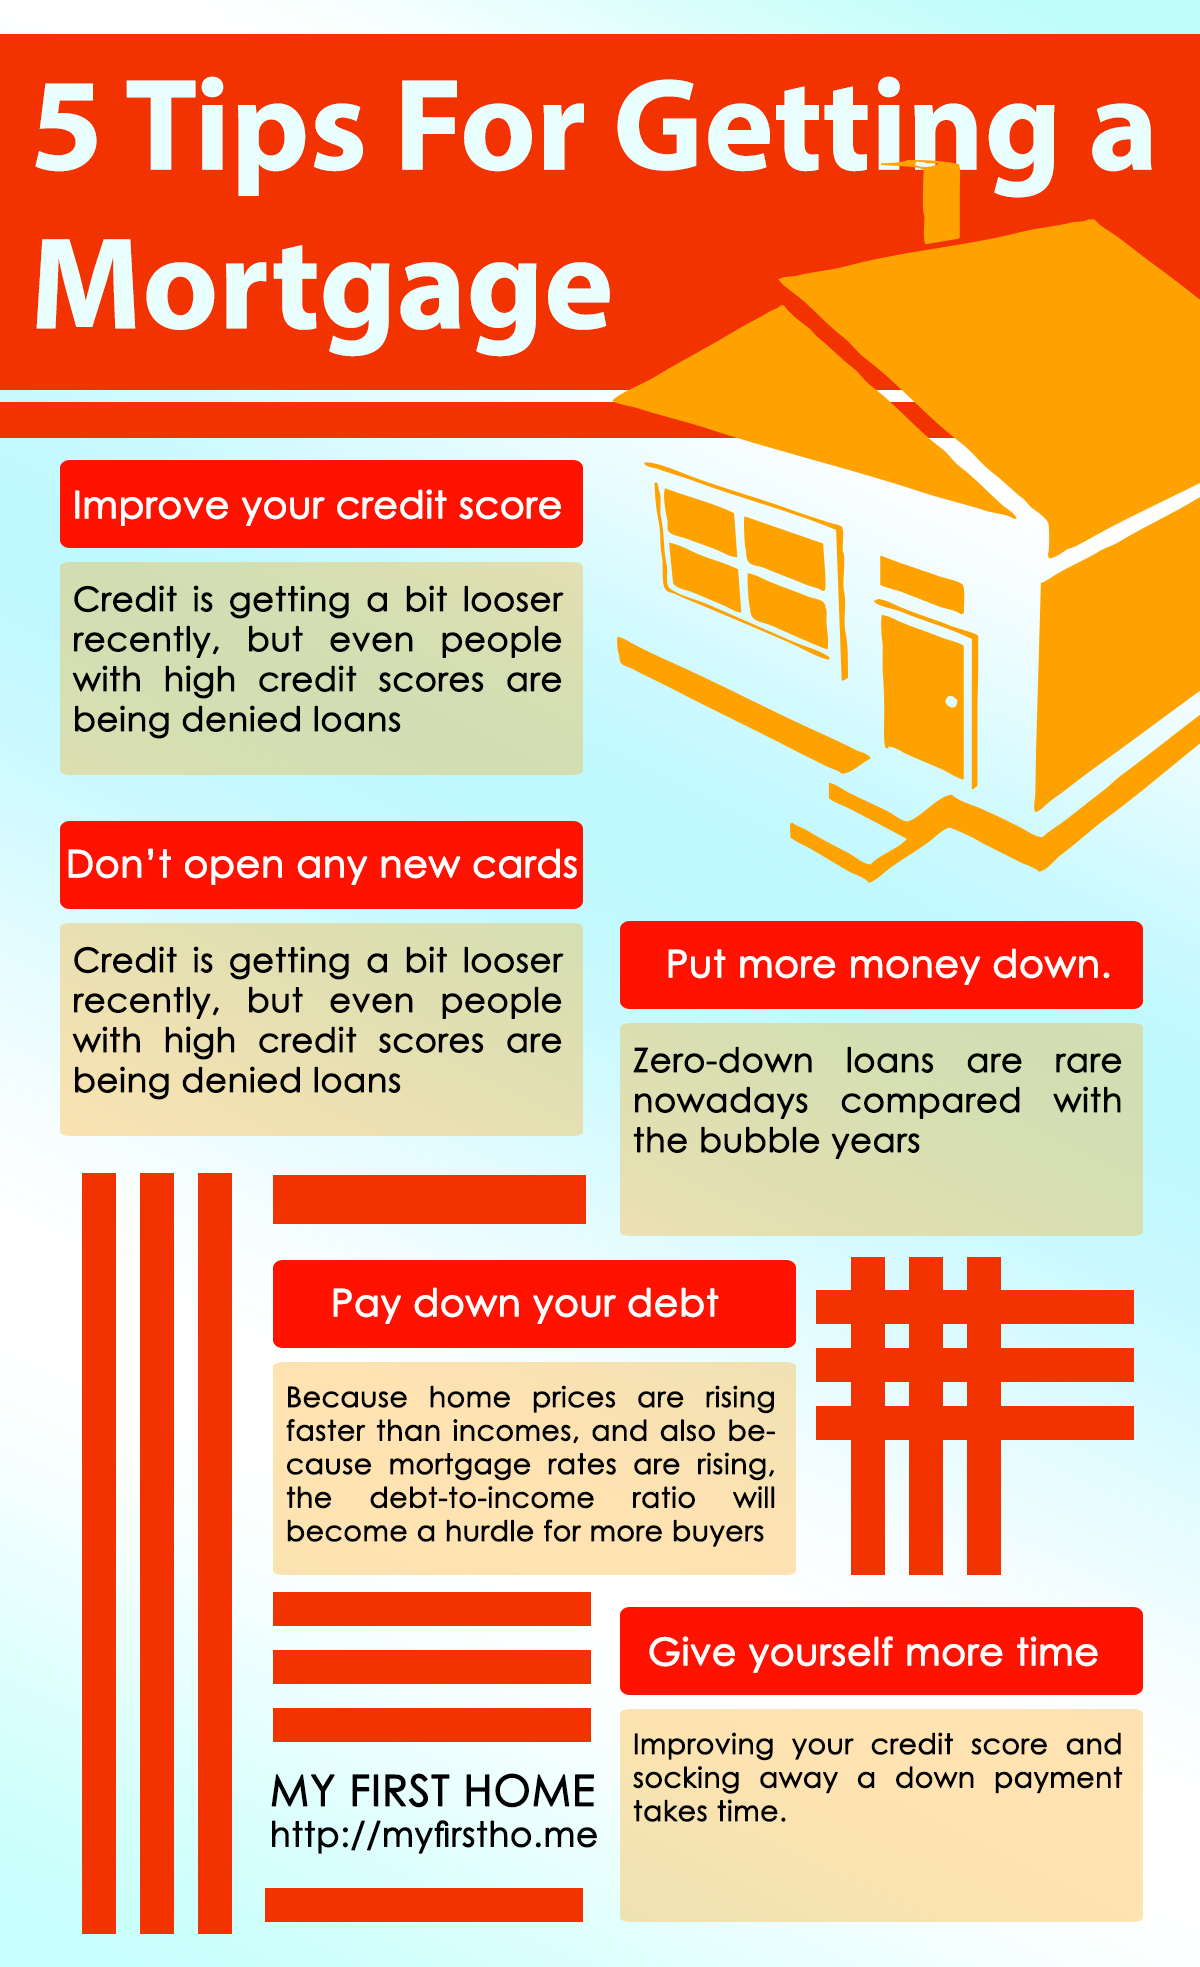 5 Tips For Getting a Mortgage